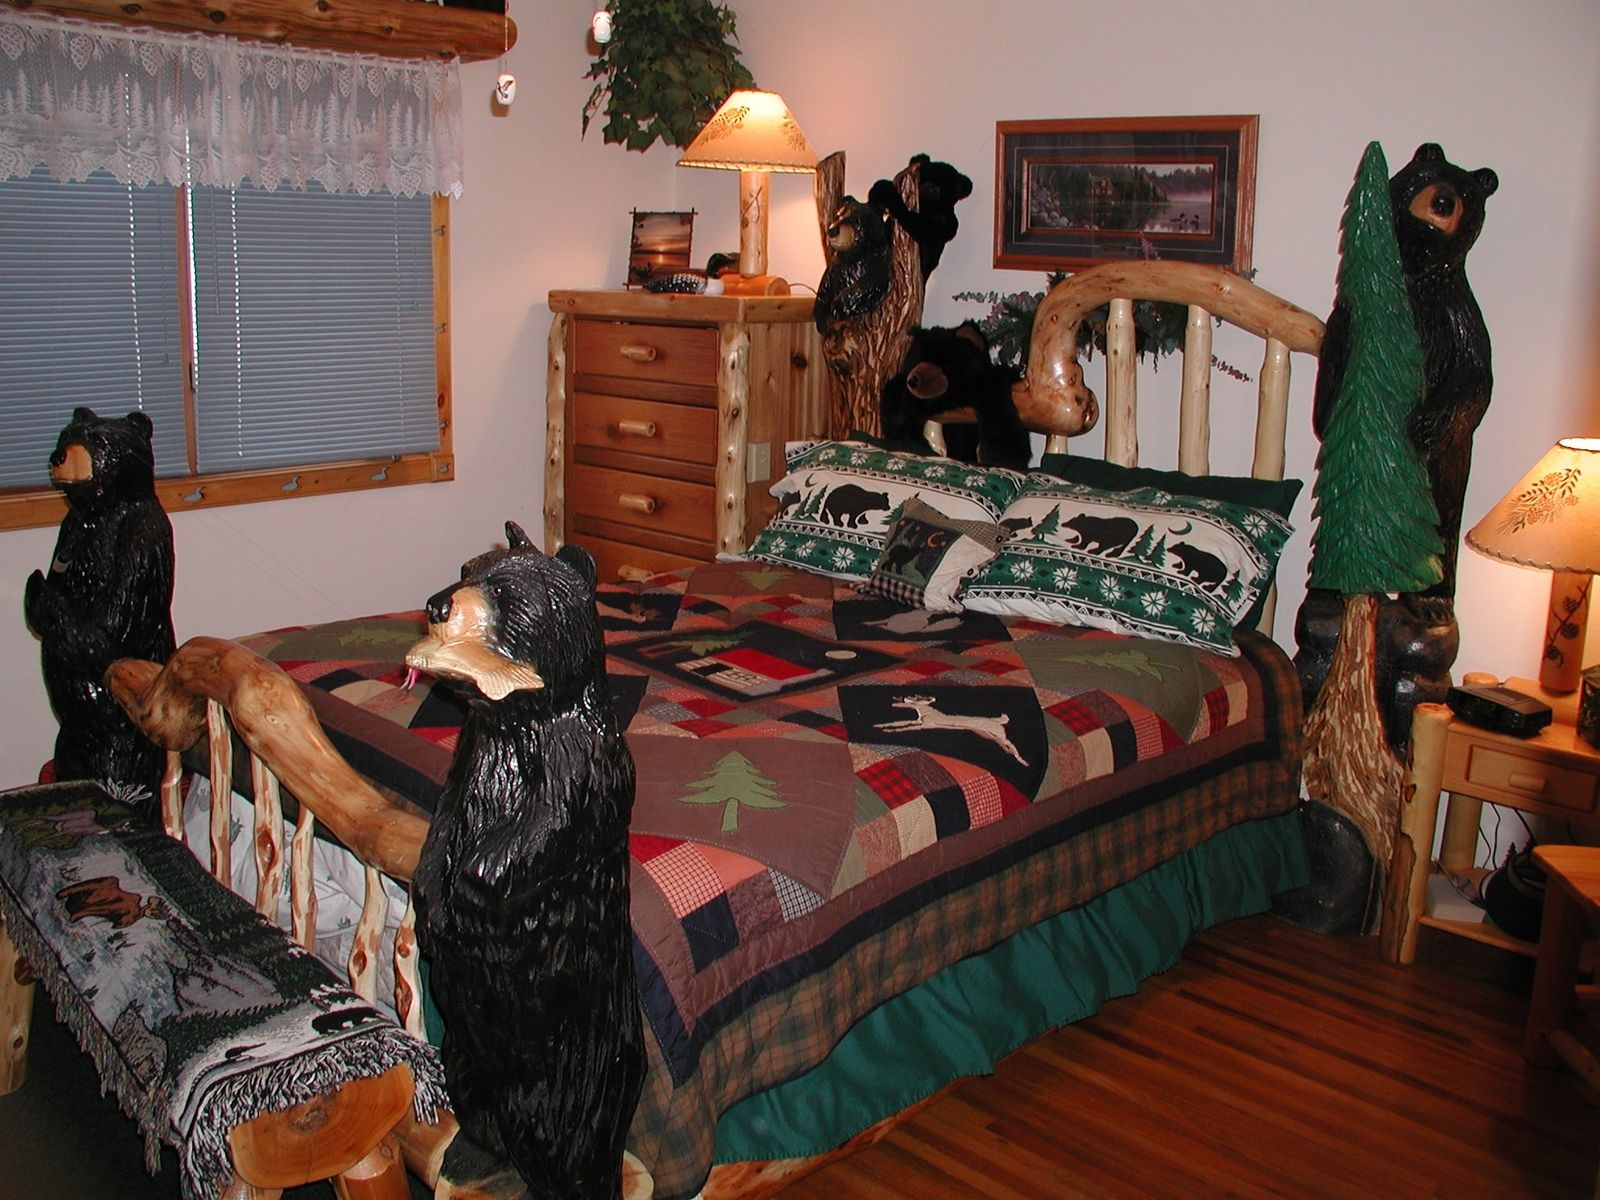 Hand Crafted Log Bed With Bears By I Saw It In Minnesota Custommade Com